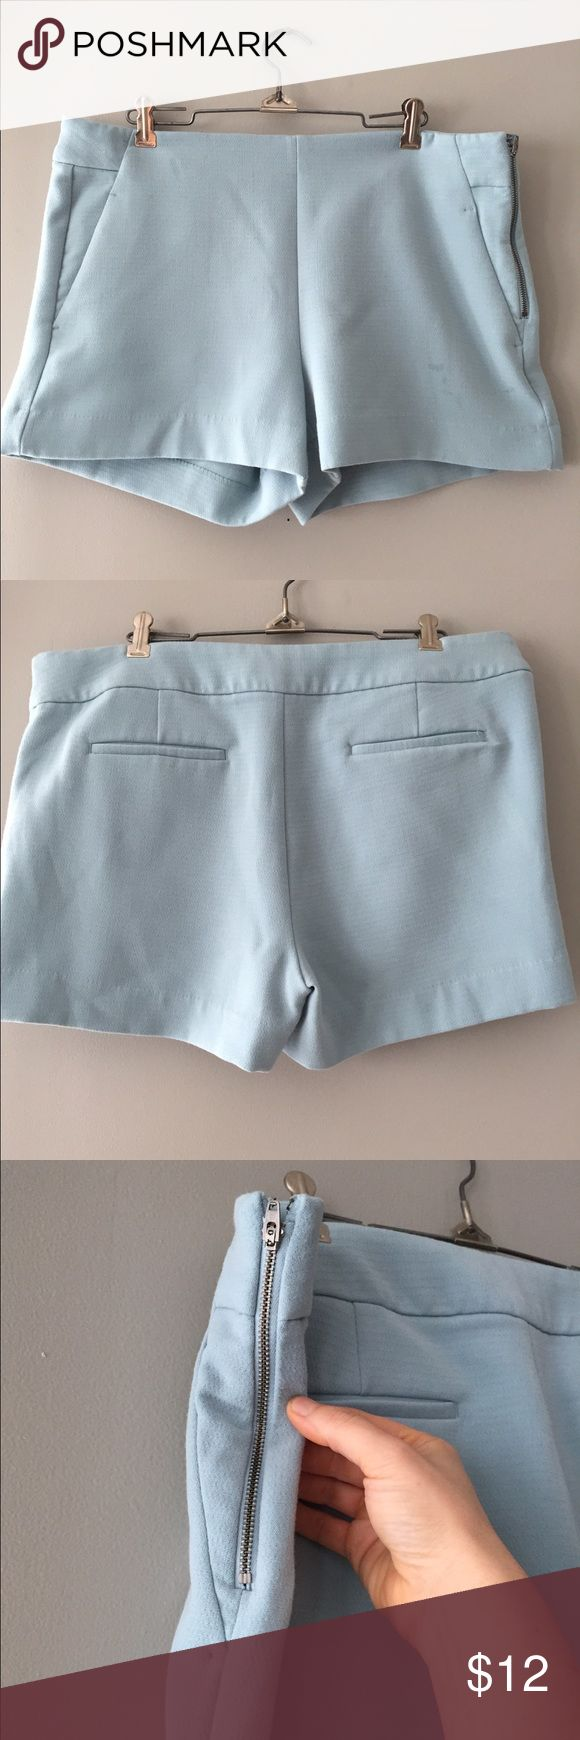 NWOT Banana Republic light blue shorts NWOT banana republic light blue shorts. Perfect to dress up or down. Material composition in photos. Smoke free, pet free home. Banana Republic Shorts